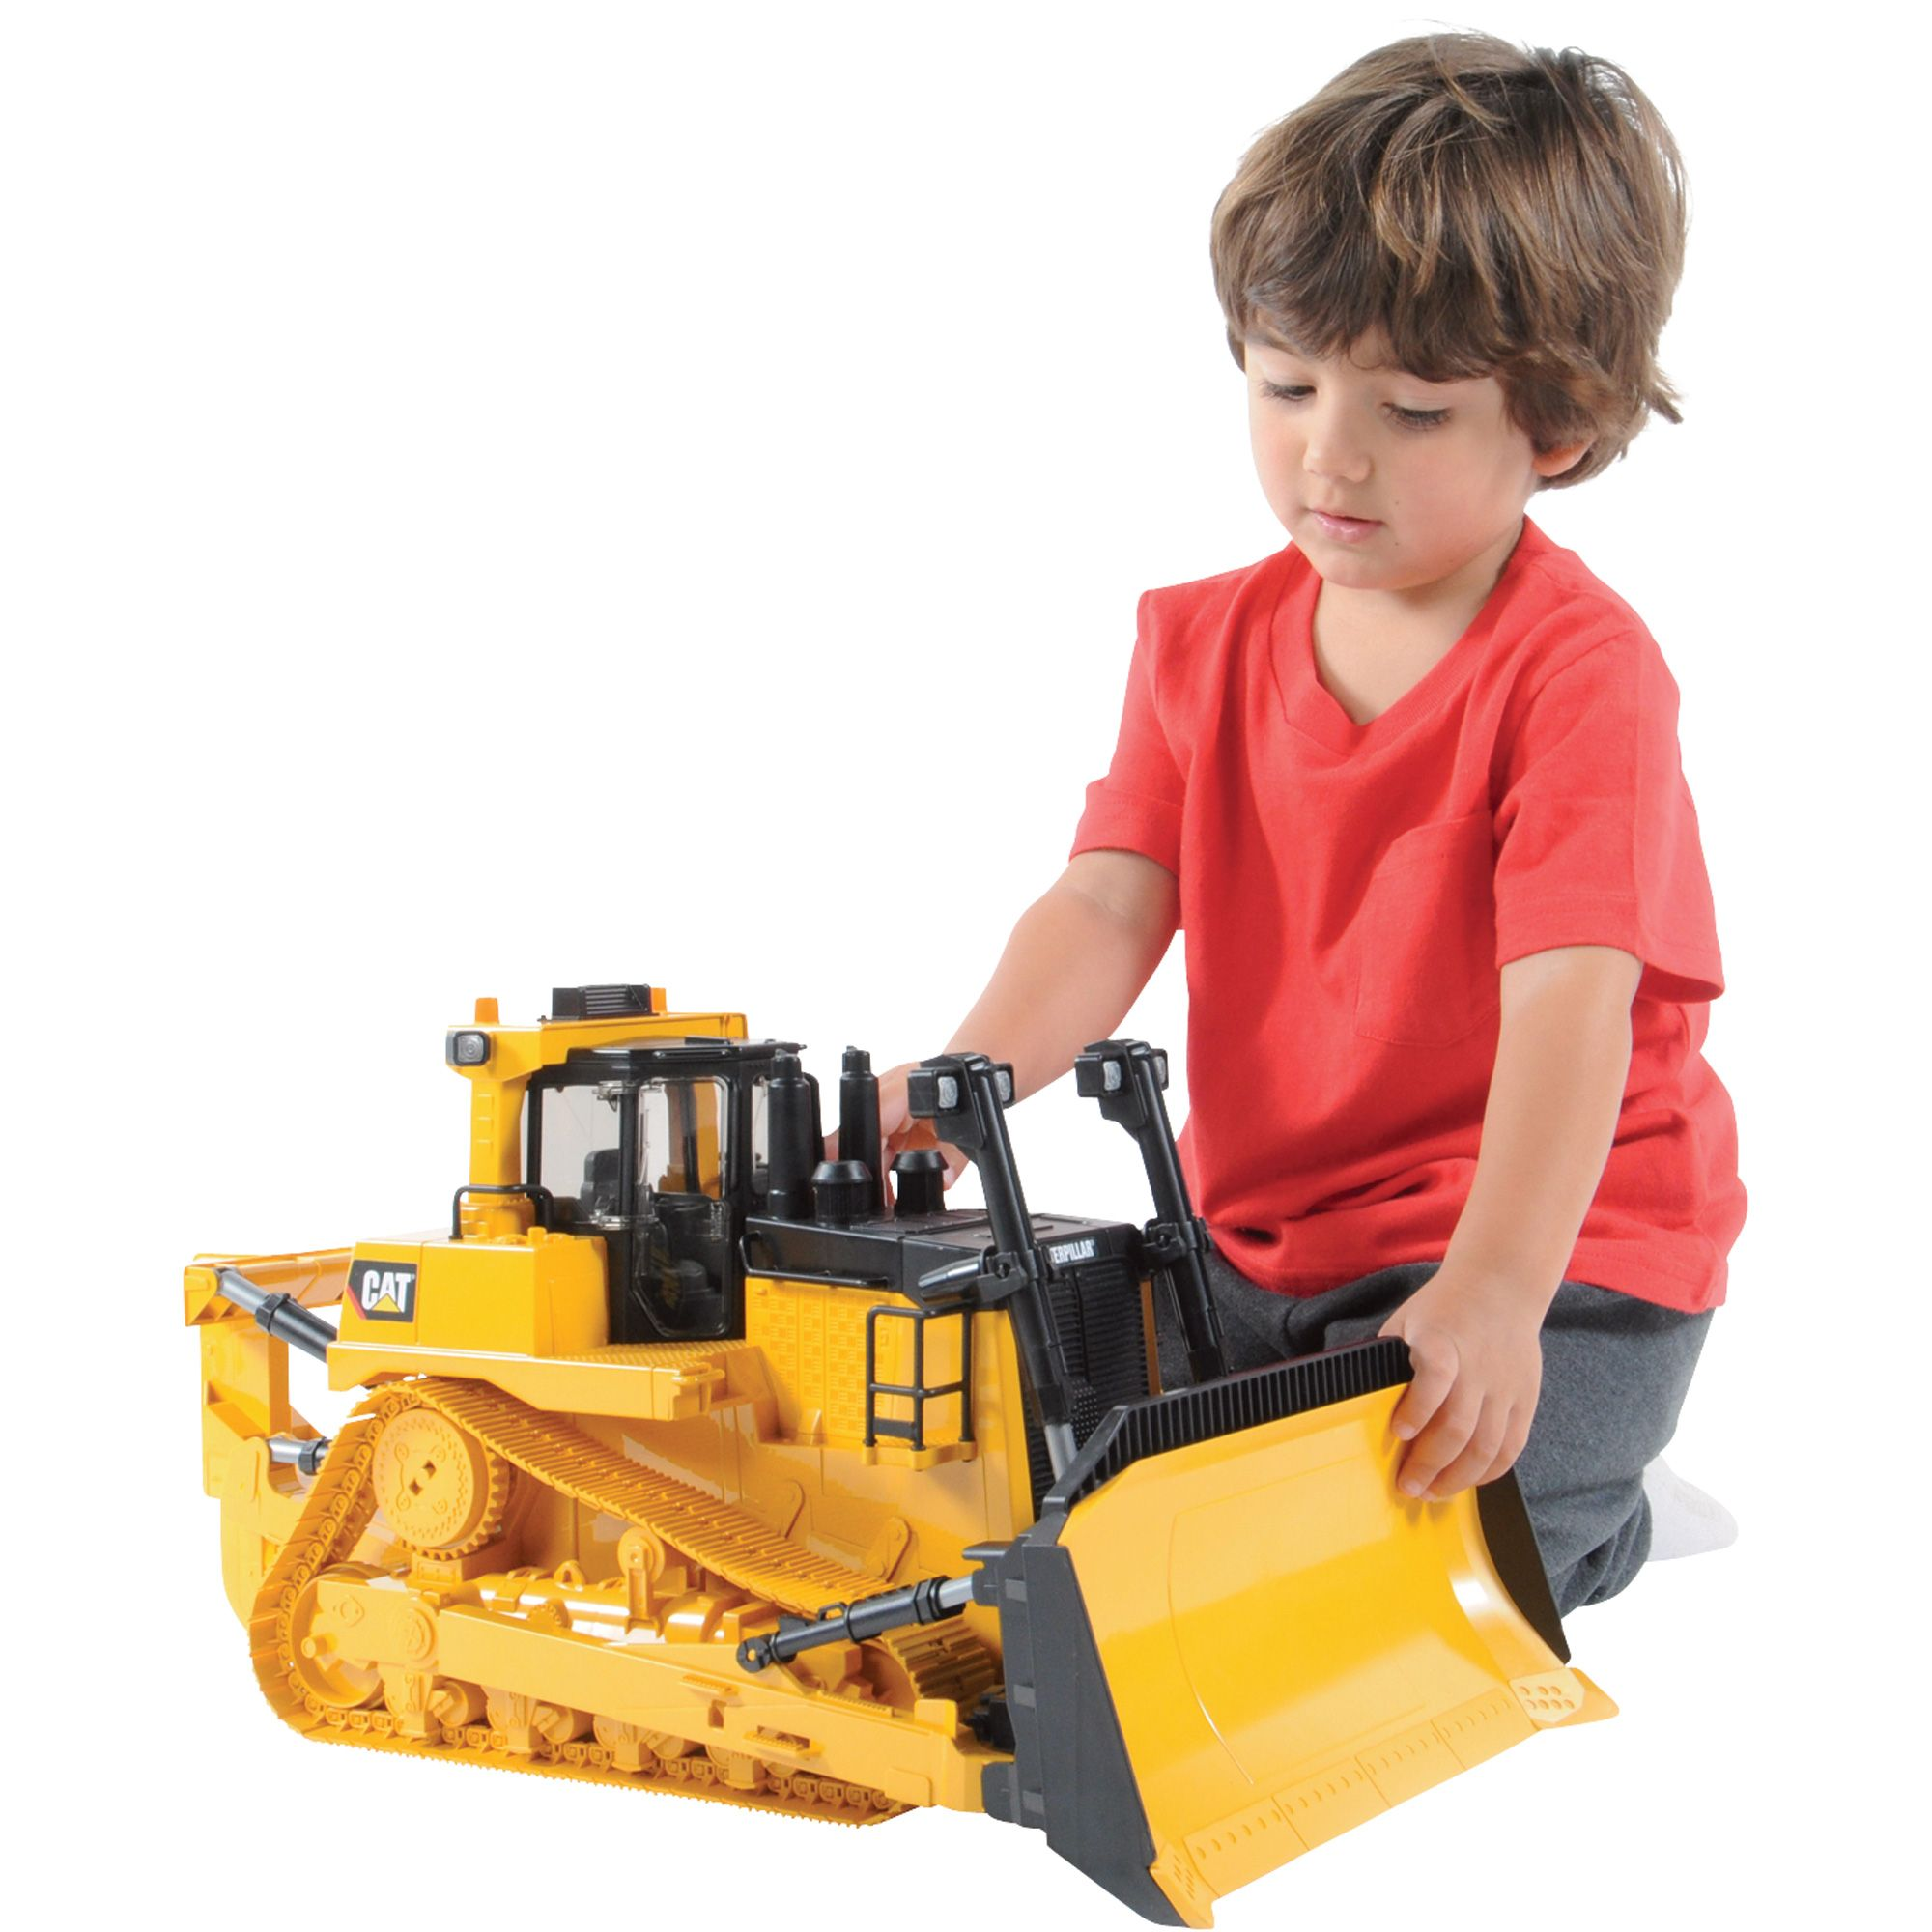 Bruder Construction Toys For Boys : Bruder toys cat large track dozer kid s outdoor